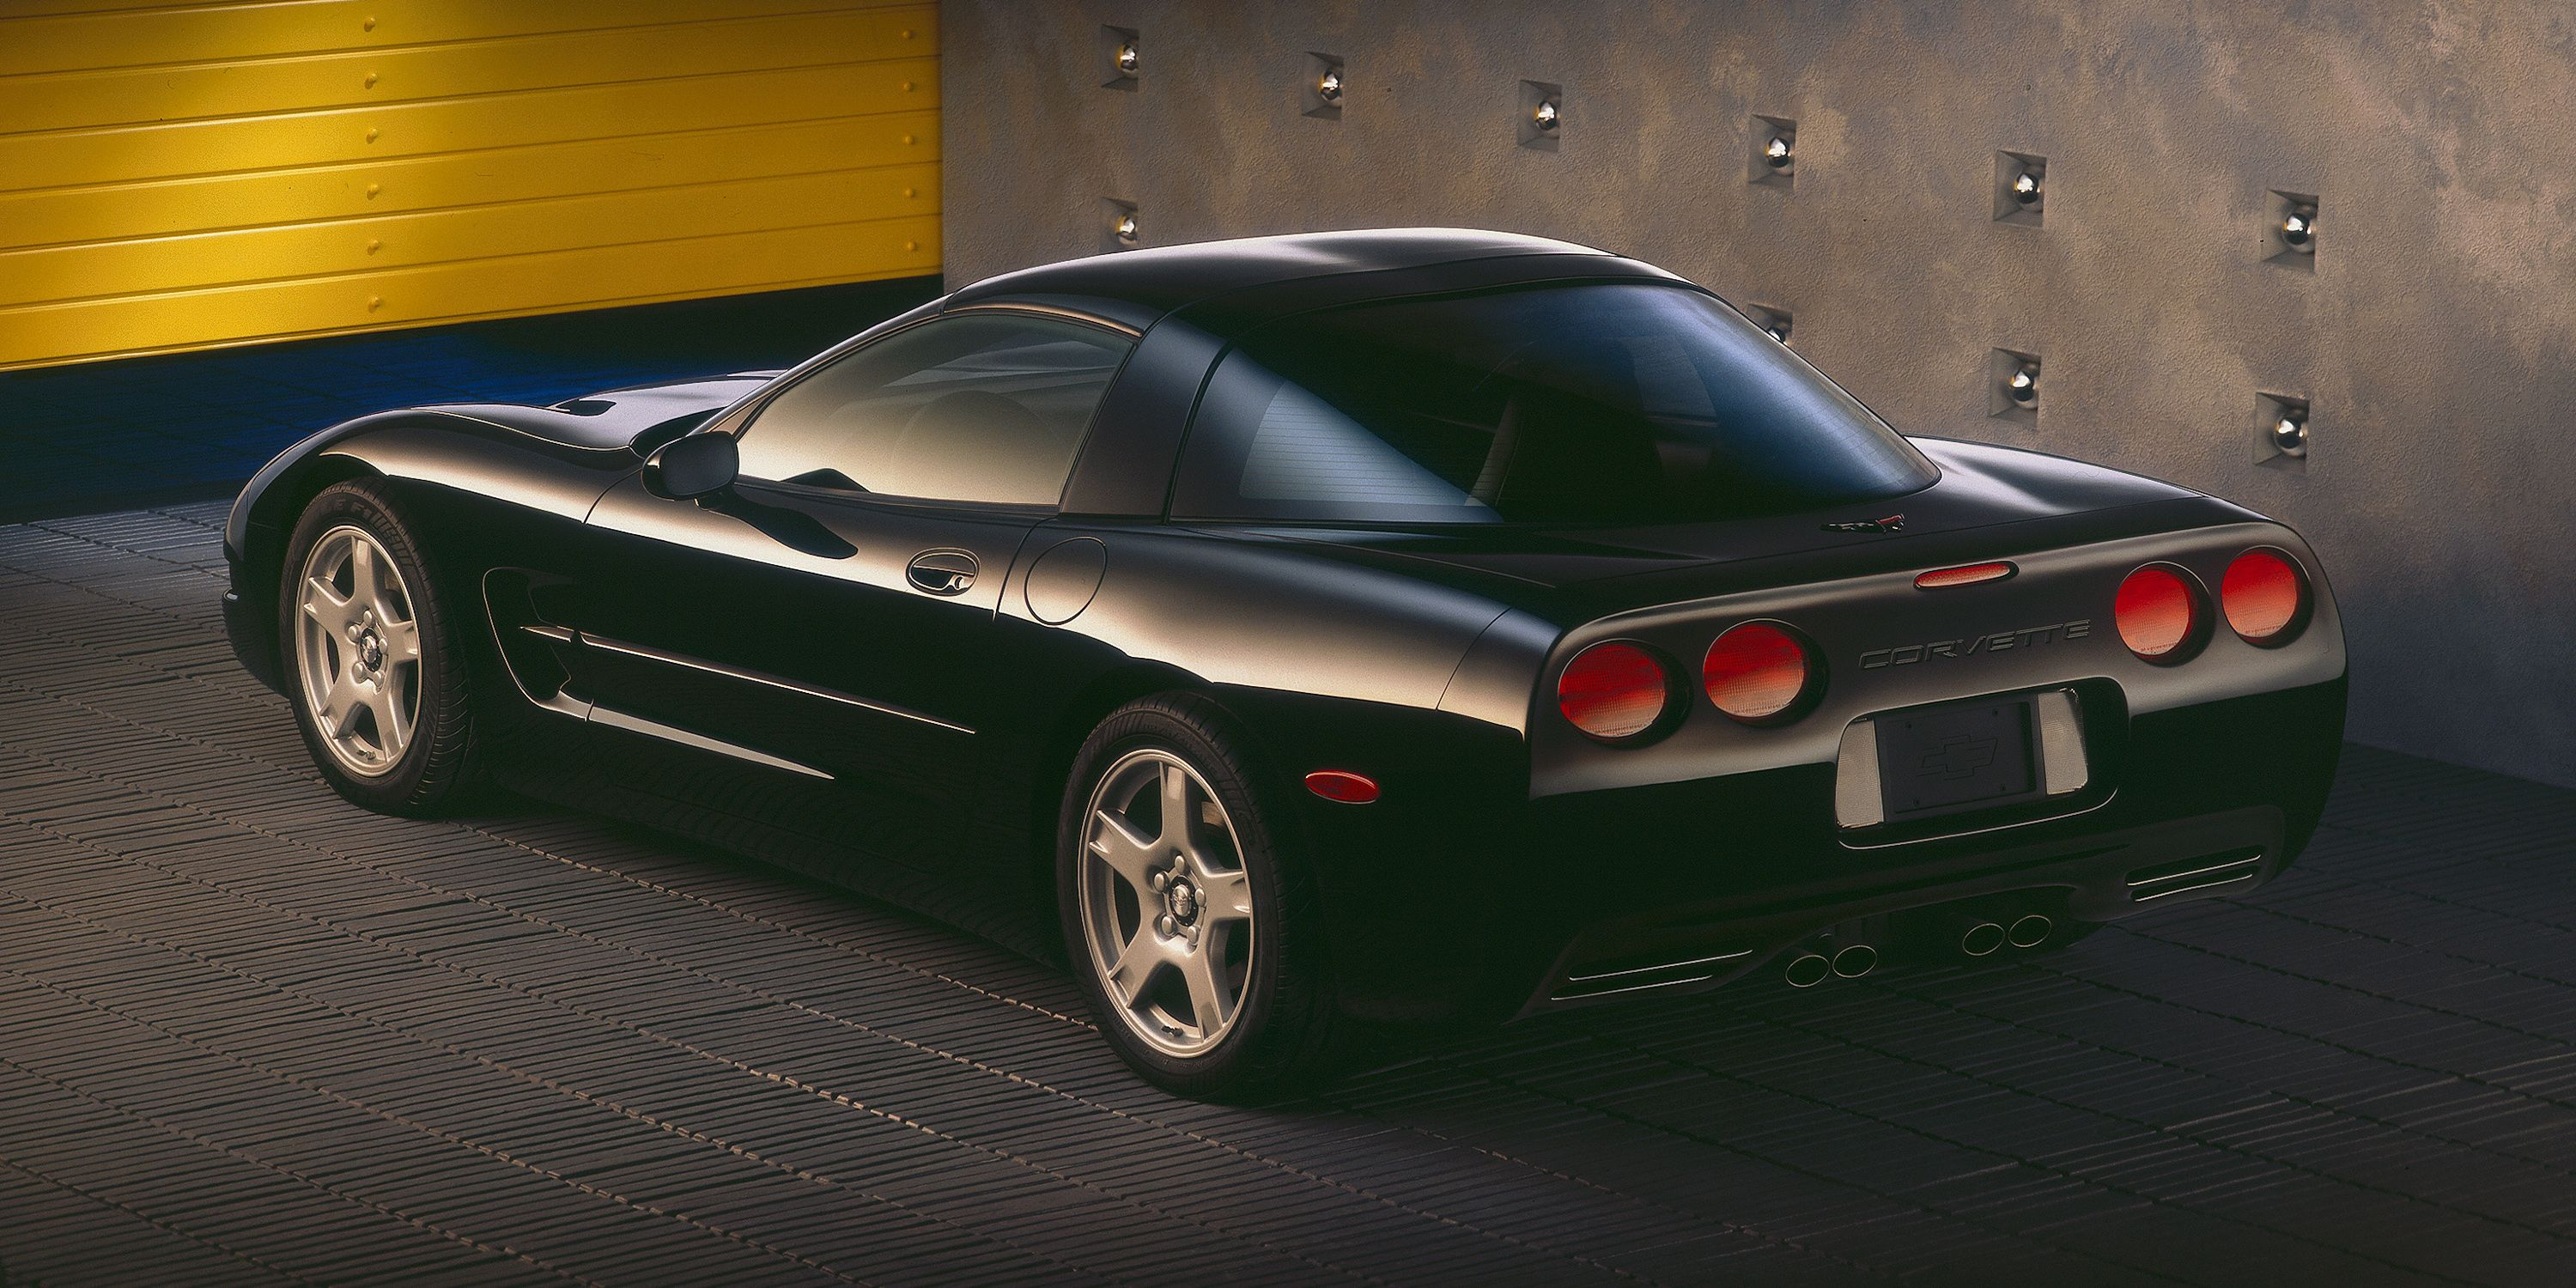 The C5 Corvette Was a Gamechanger in 1997